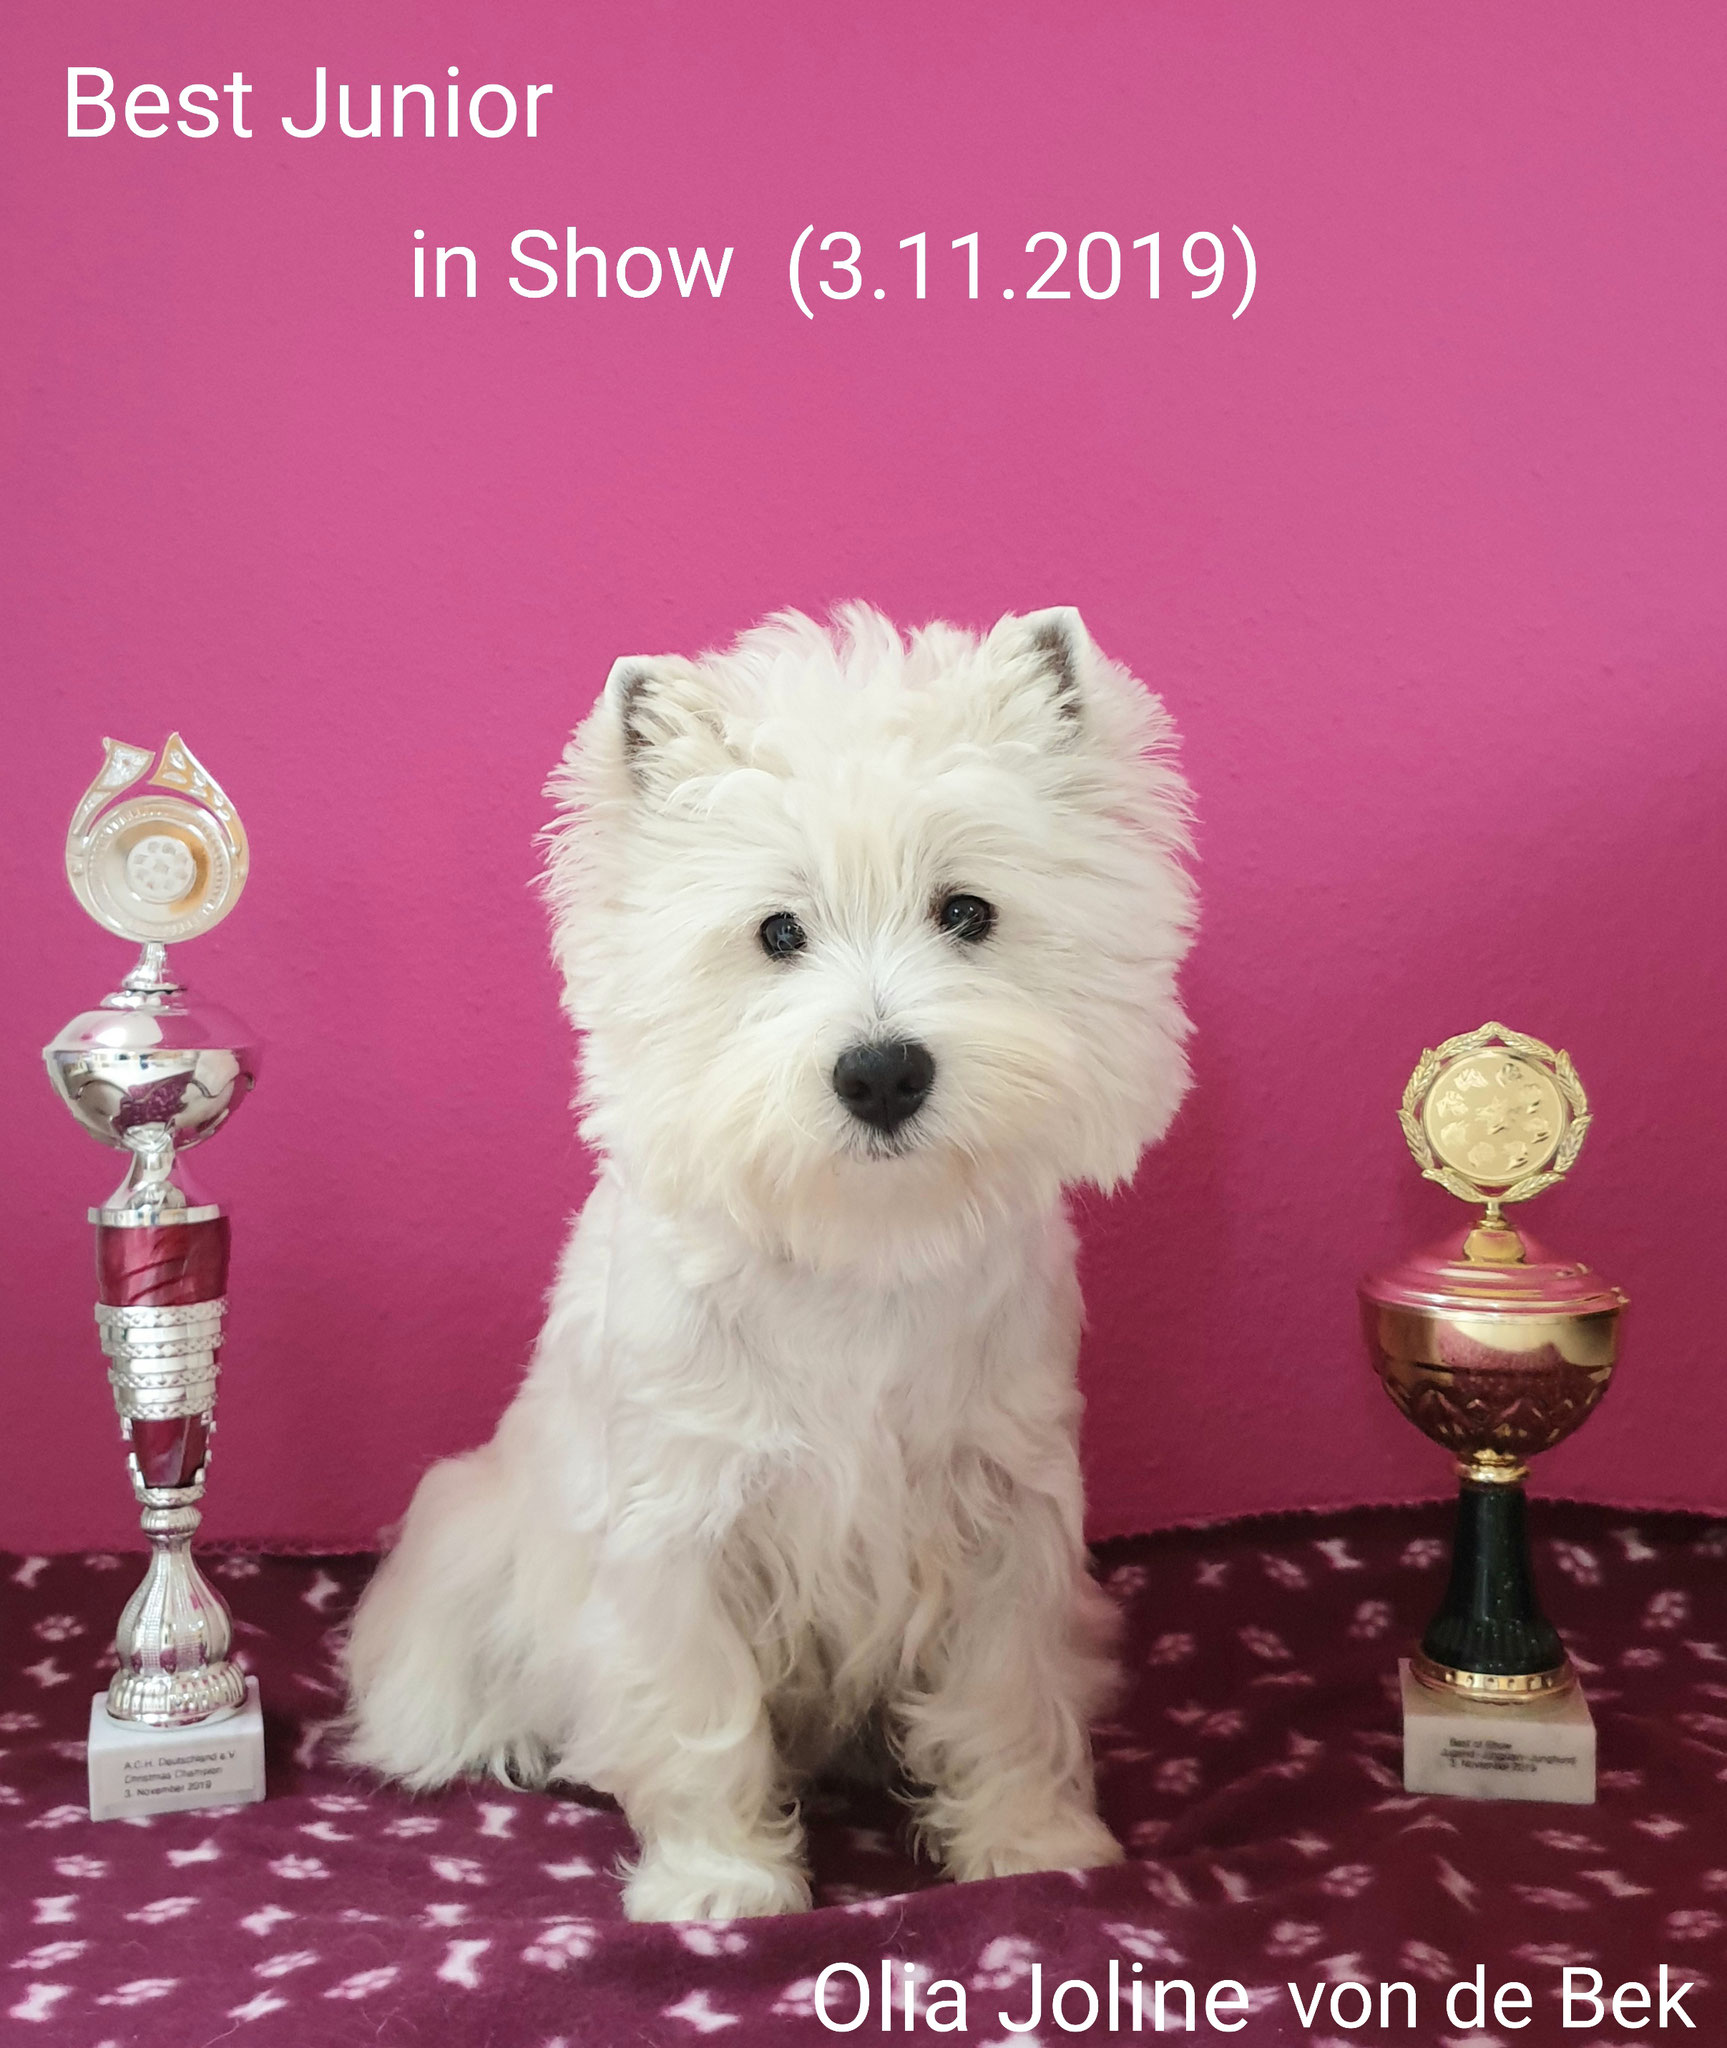 Best Junior in Show 03.11.2019